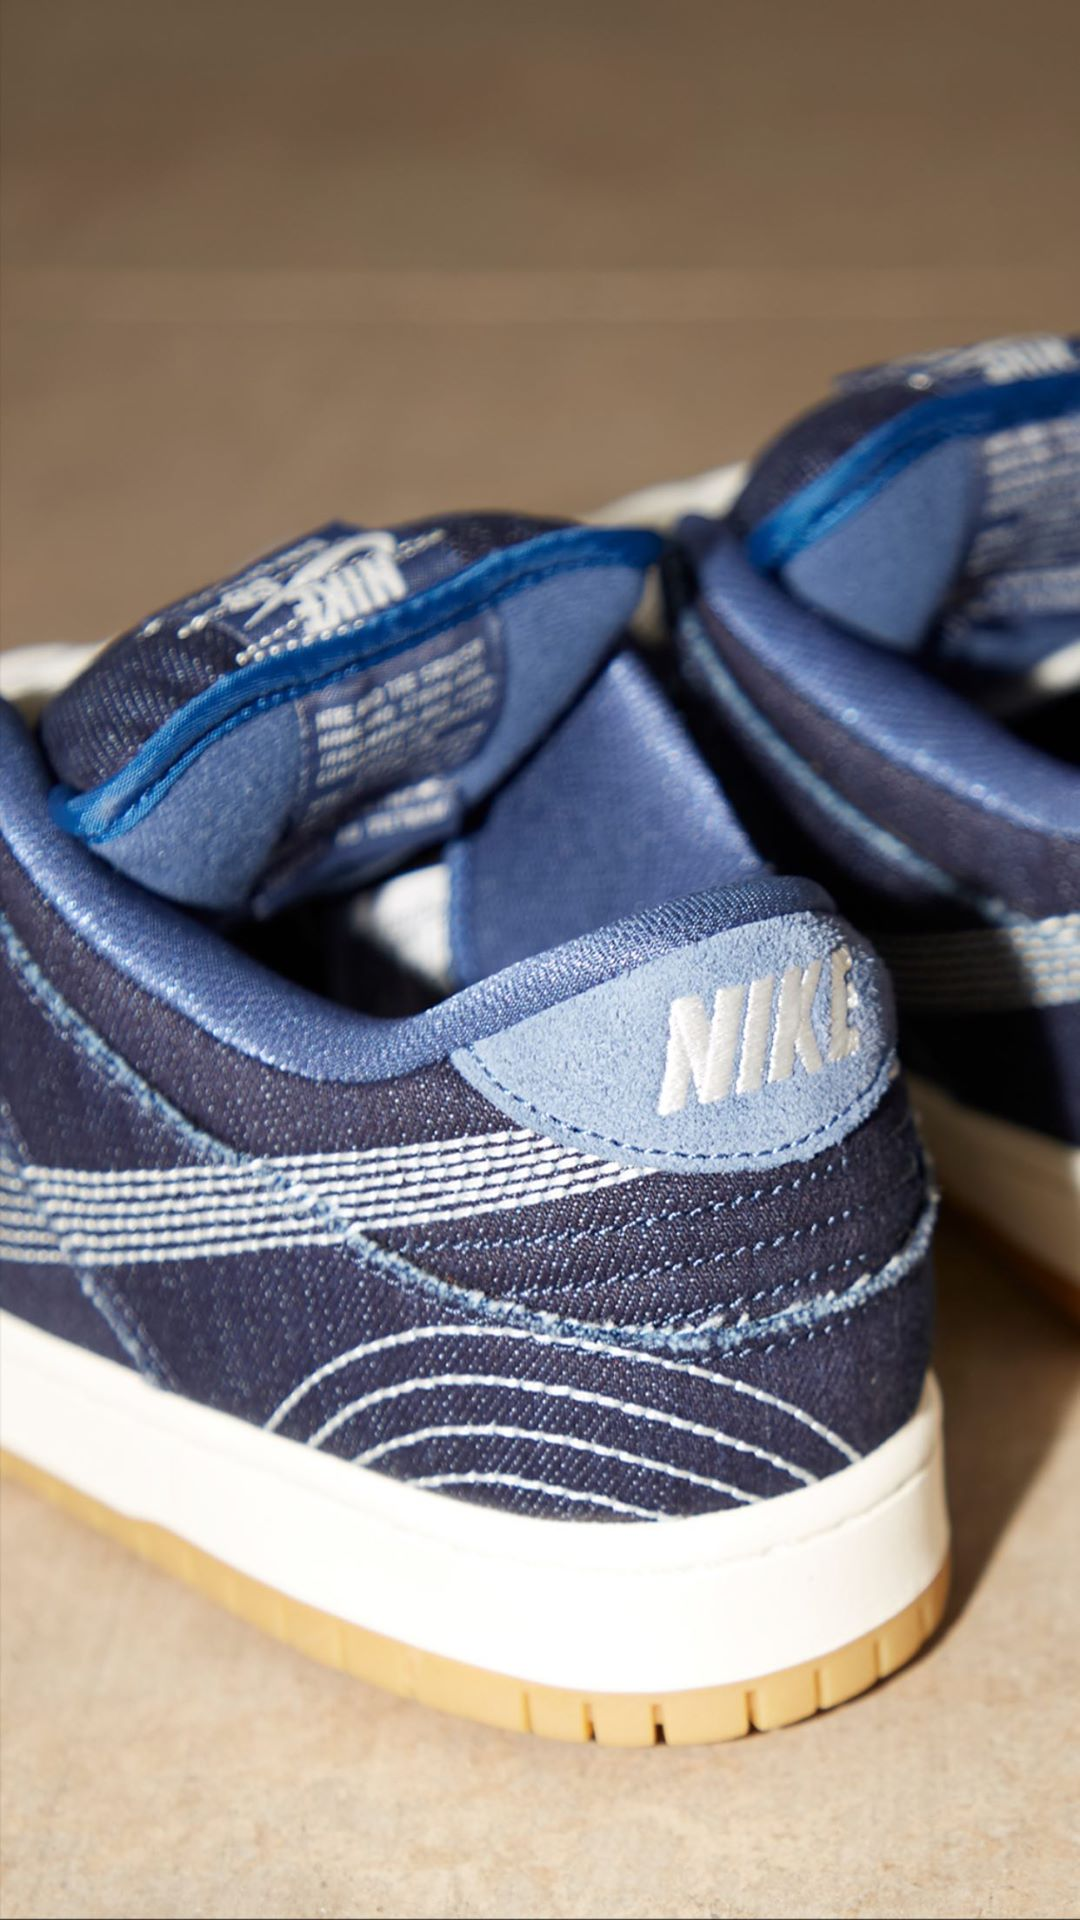 nike-sb-dunk-low-denim-gum-cv0316-400-release-20200801